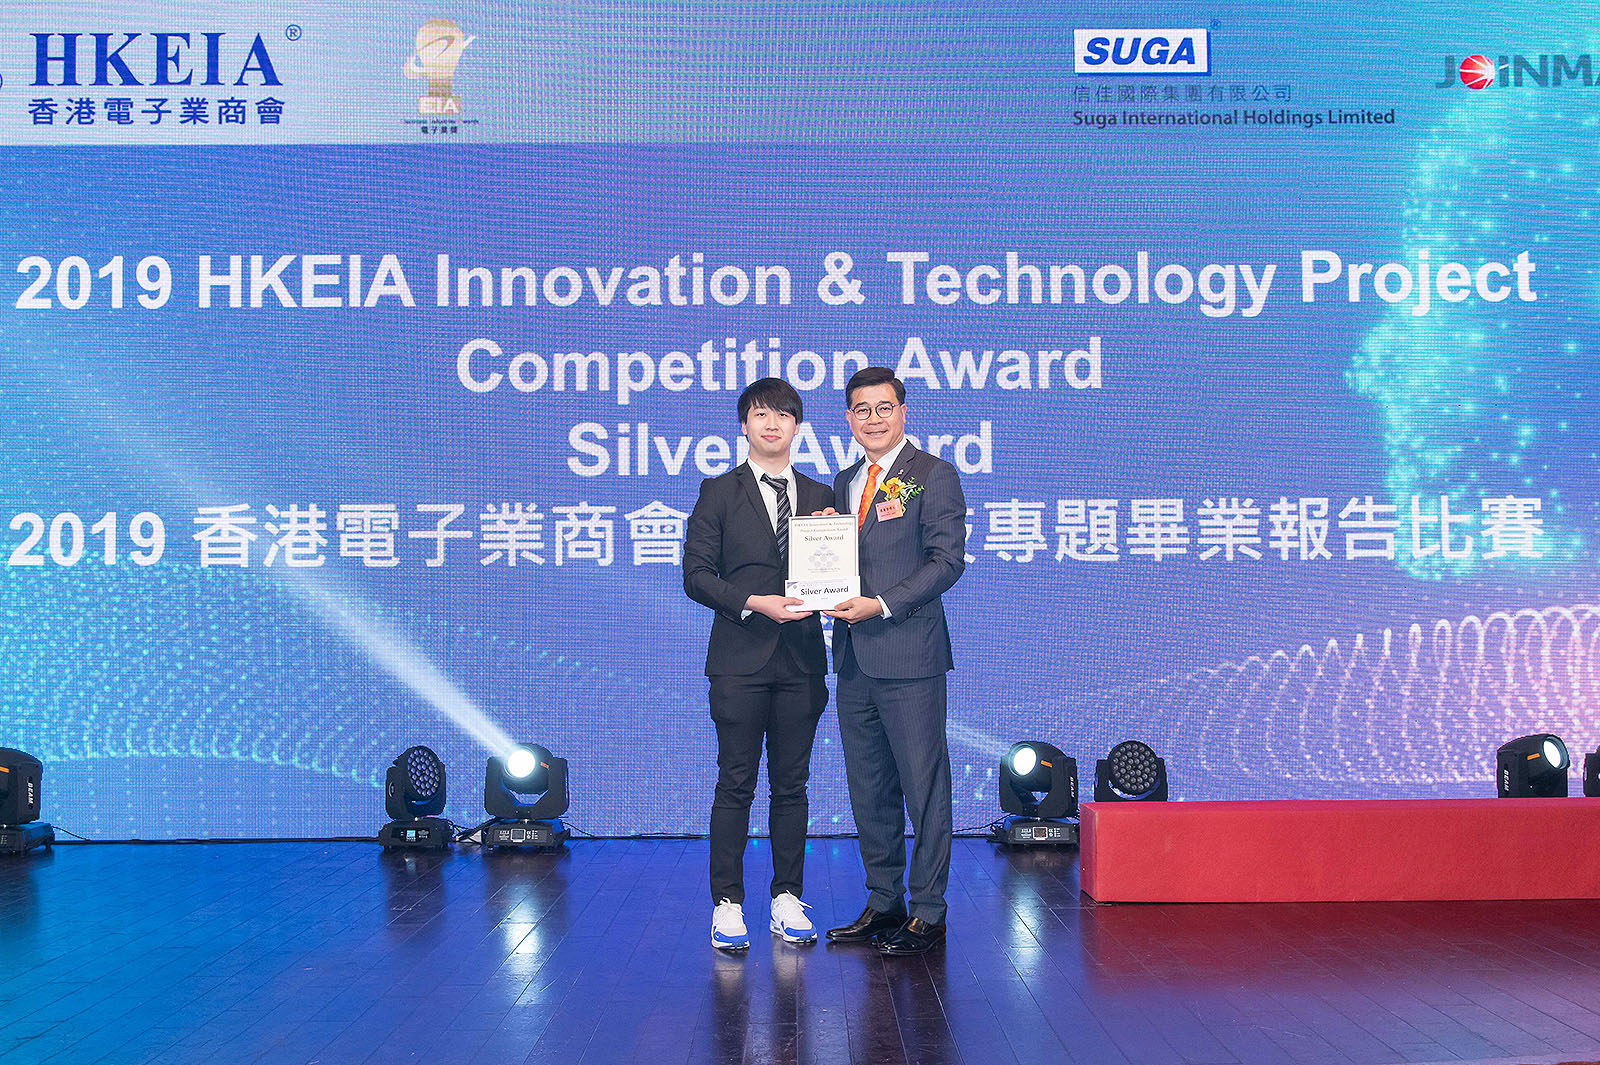 Mr Hang (left) received the Silver Award of the HKEIA Innovation & Technology Project Competition Award 2019.